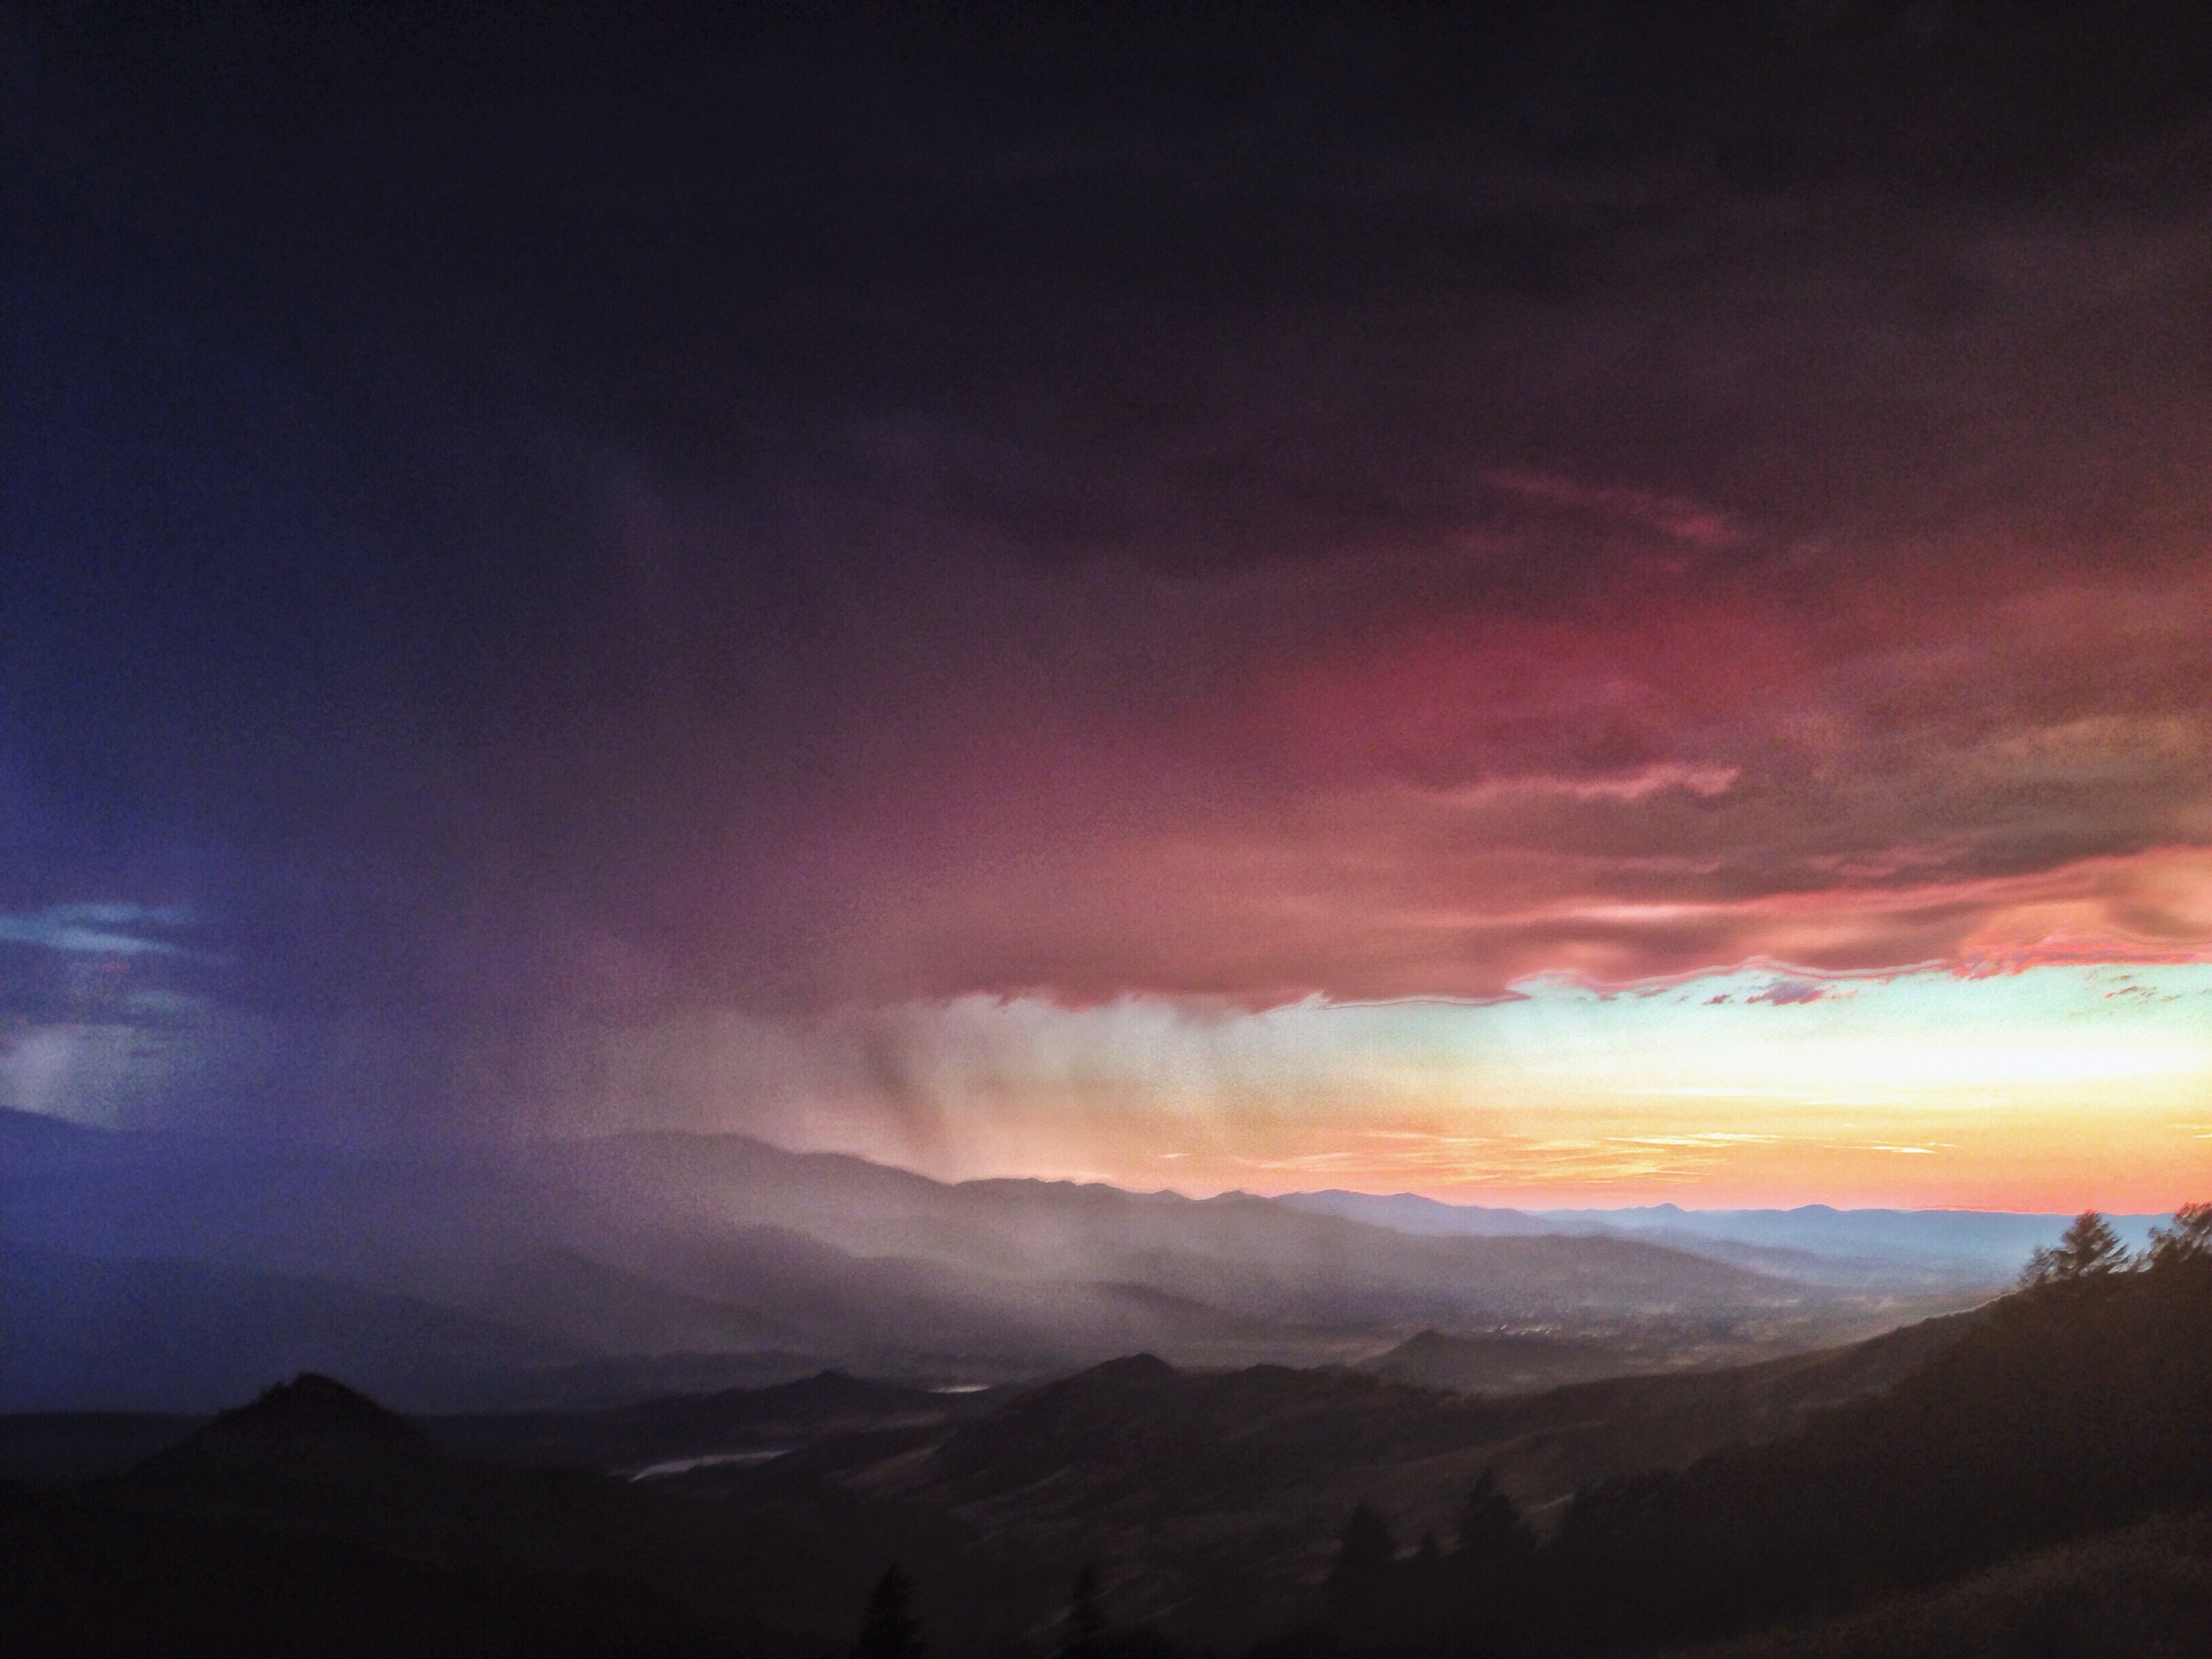 Thunderstorm at sunset.